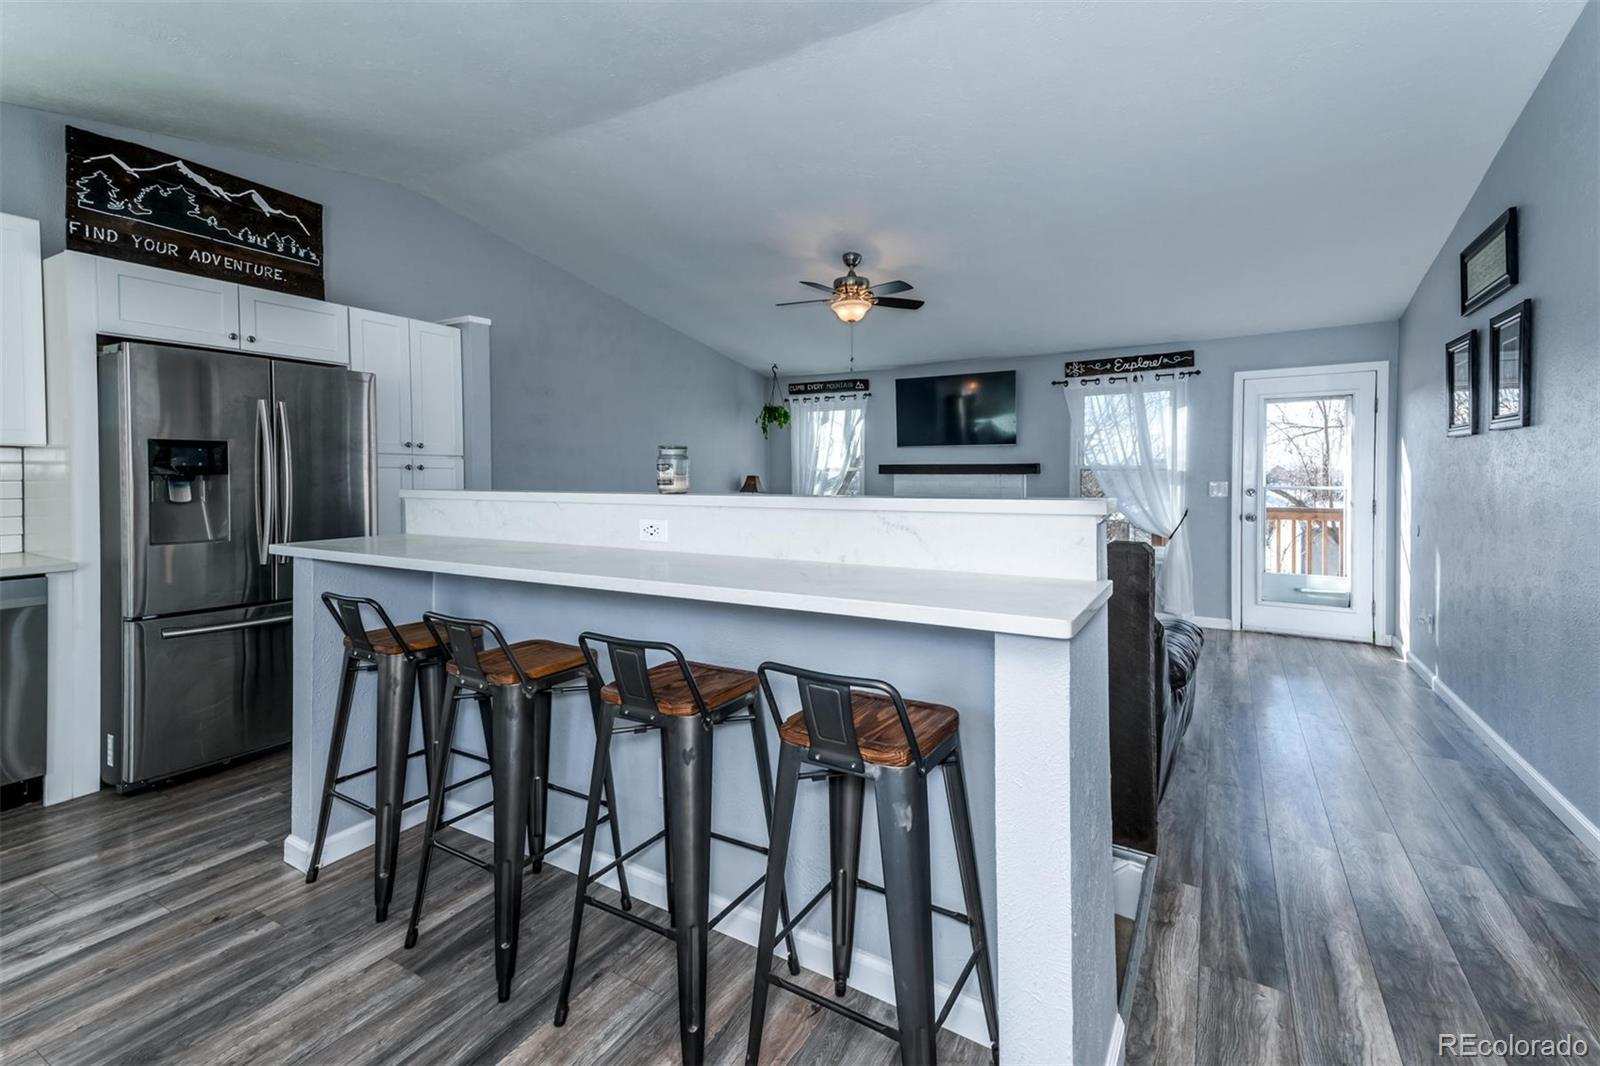 MLS# 5599126 - 3 - 5806 W 74th Place, Arvada, CO 80003